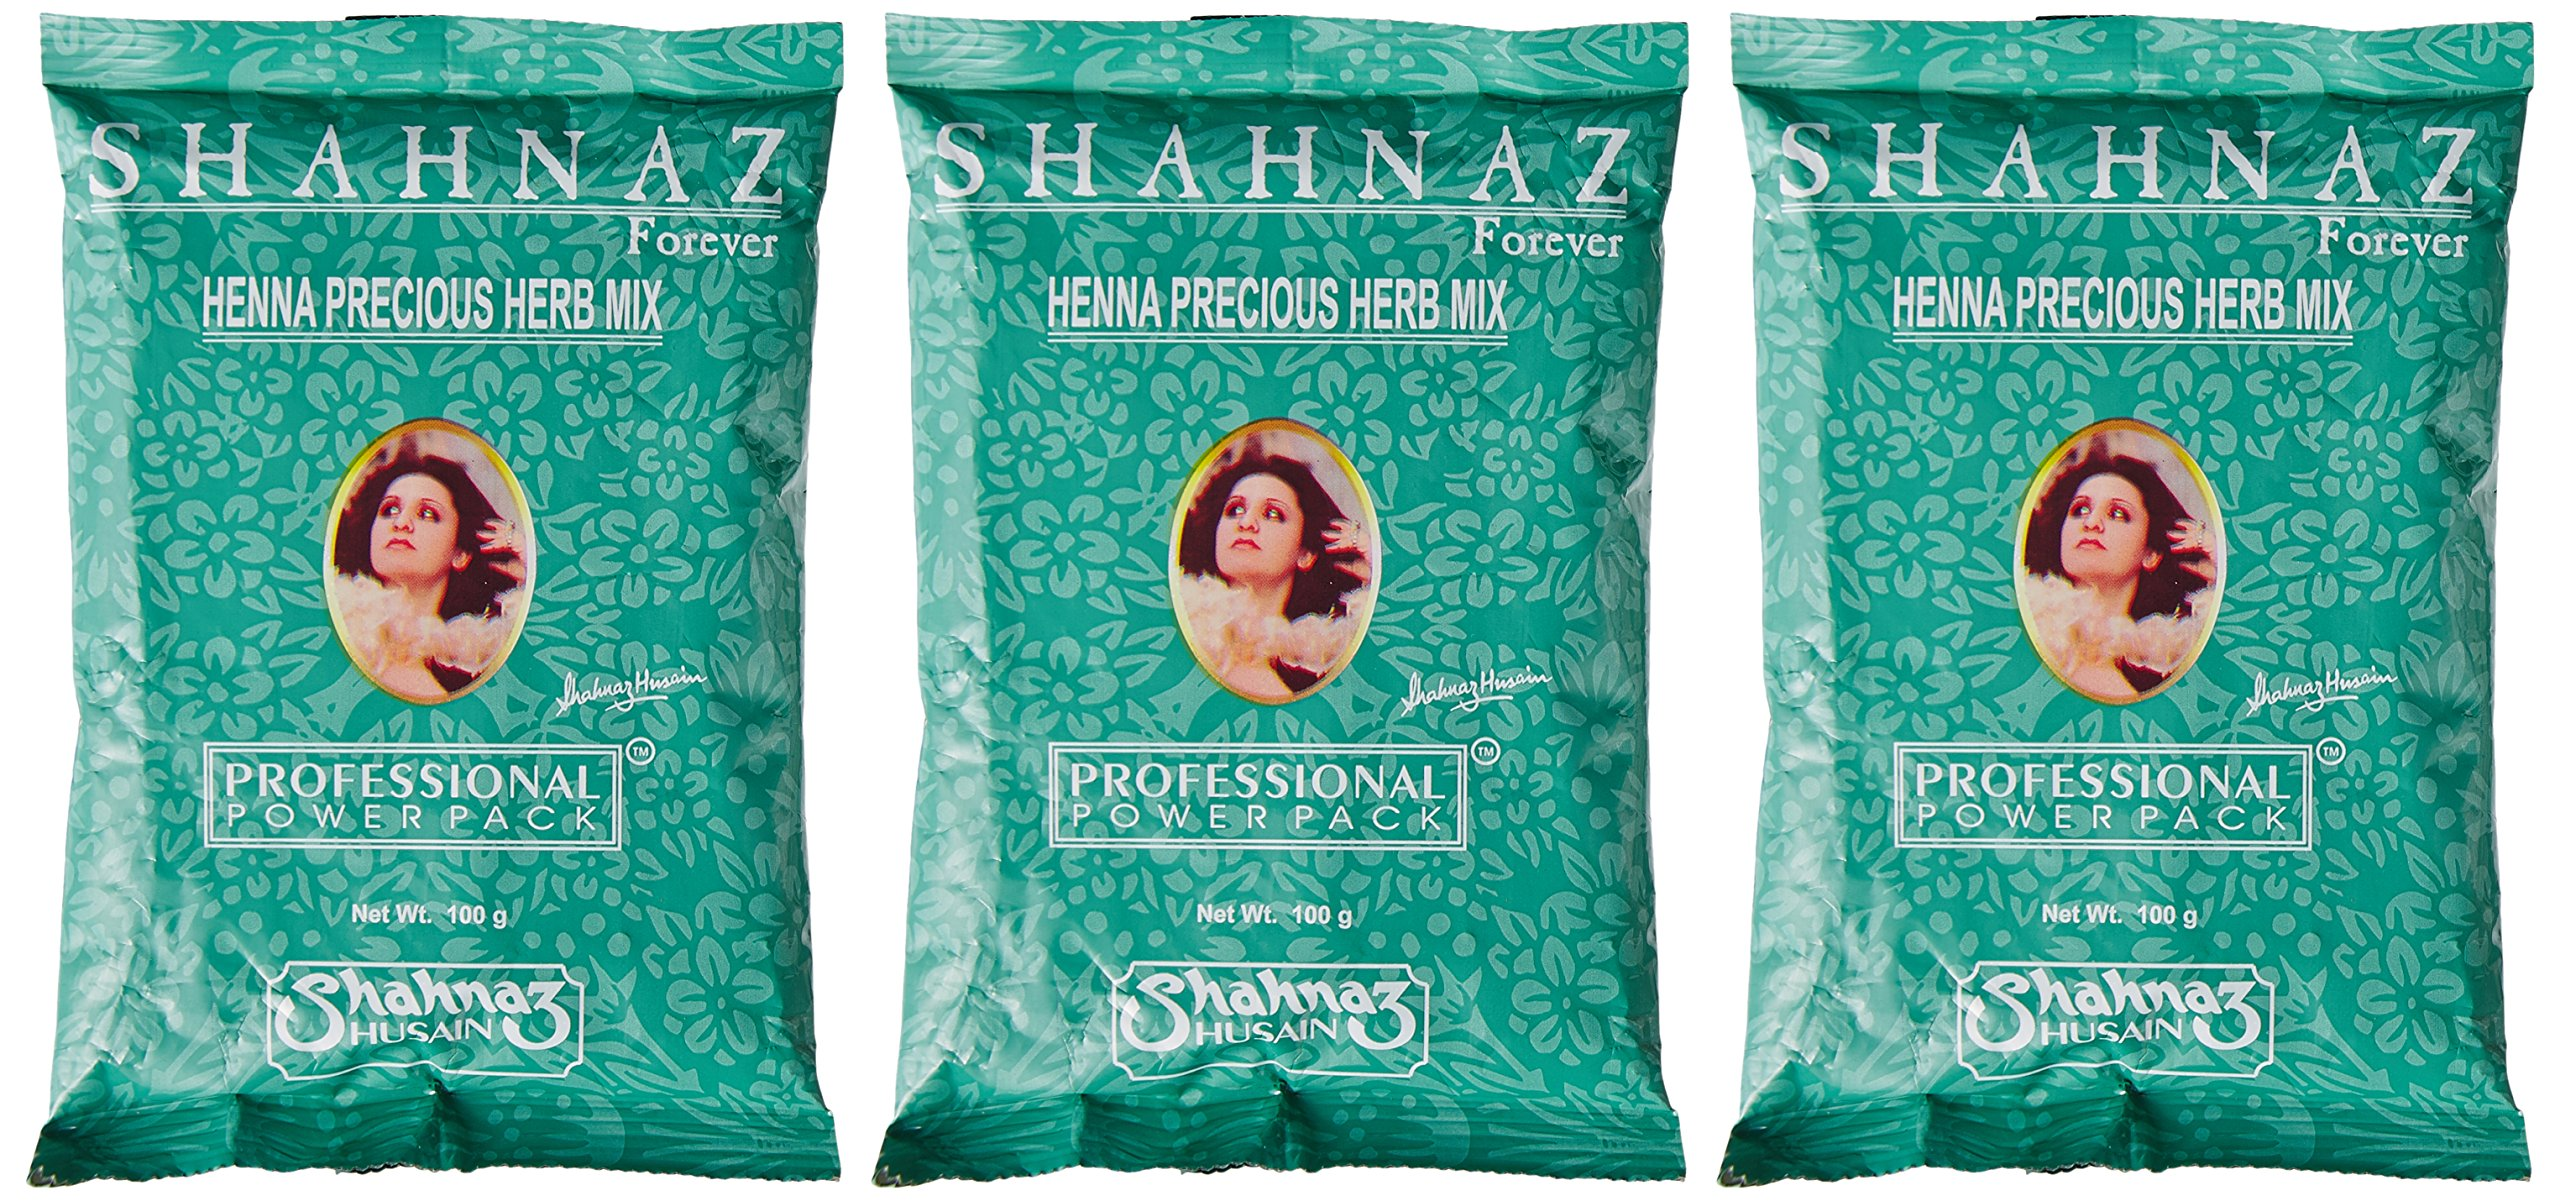 Shahnaz Husain Henna Precious Herb Mix, 100g (Buy 2 Get 1 Free) product image